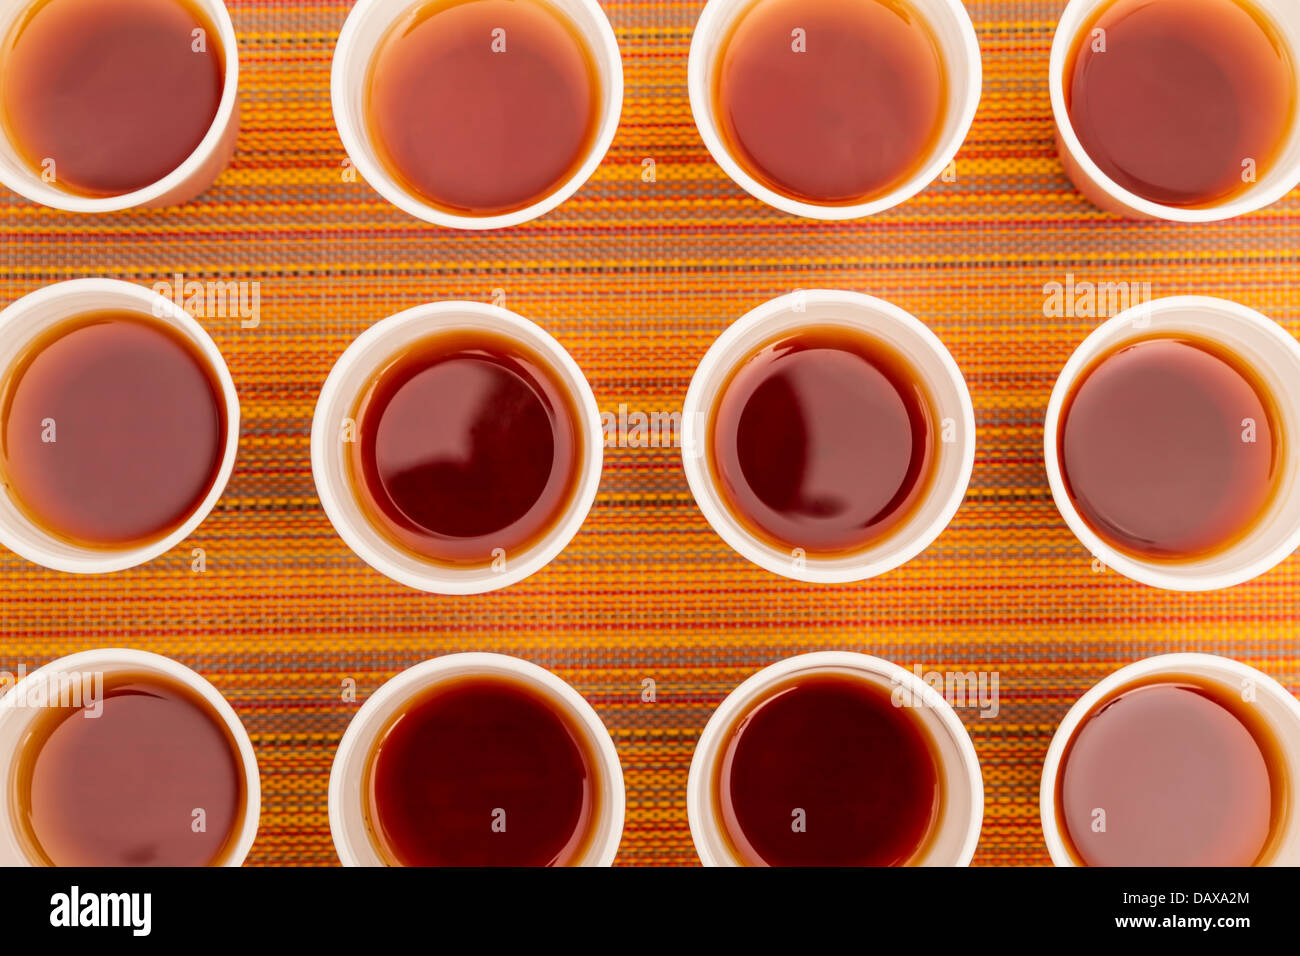 Lots of disposable cups with tea on a colorful background - Stock Image